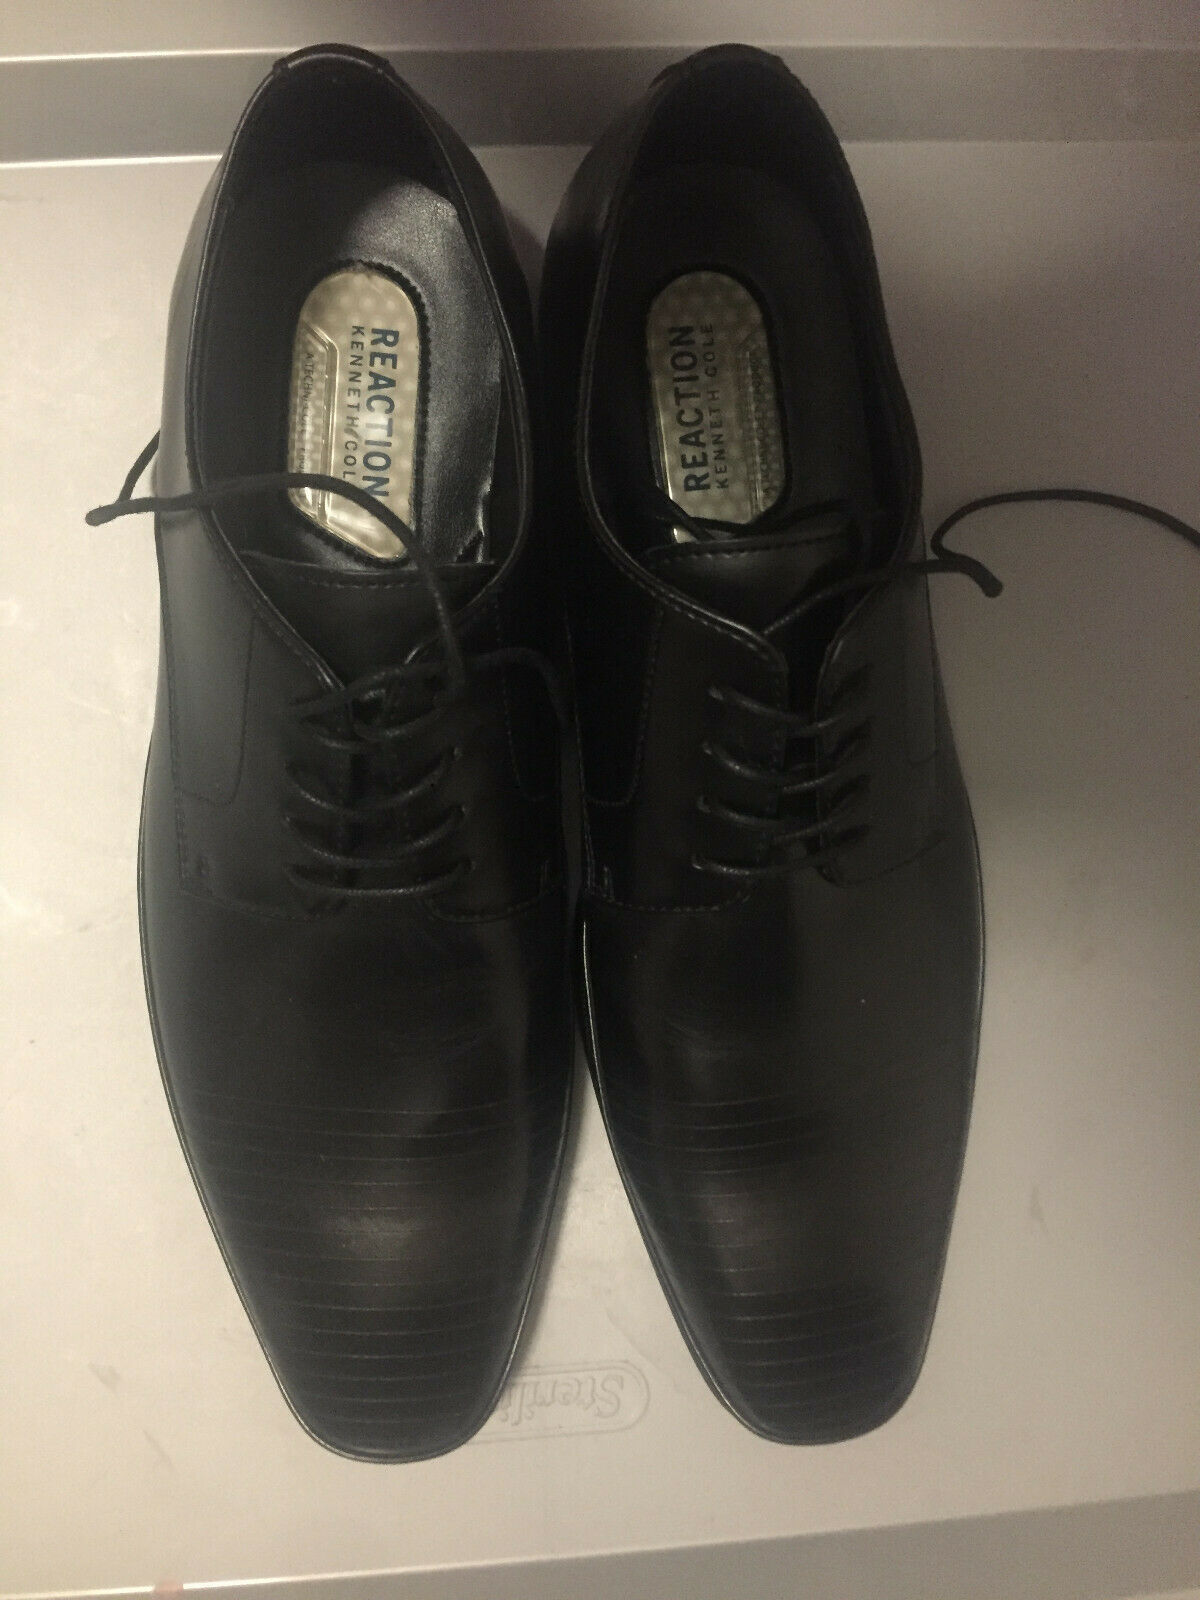 Kenneth Cole Reaction Oxford Dress Shoes NEW Size 11